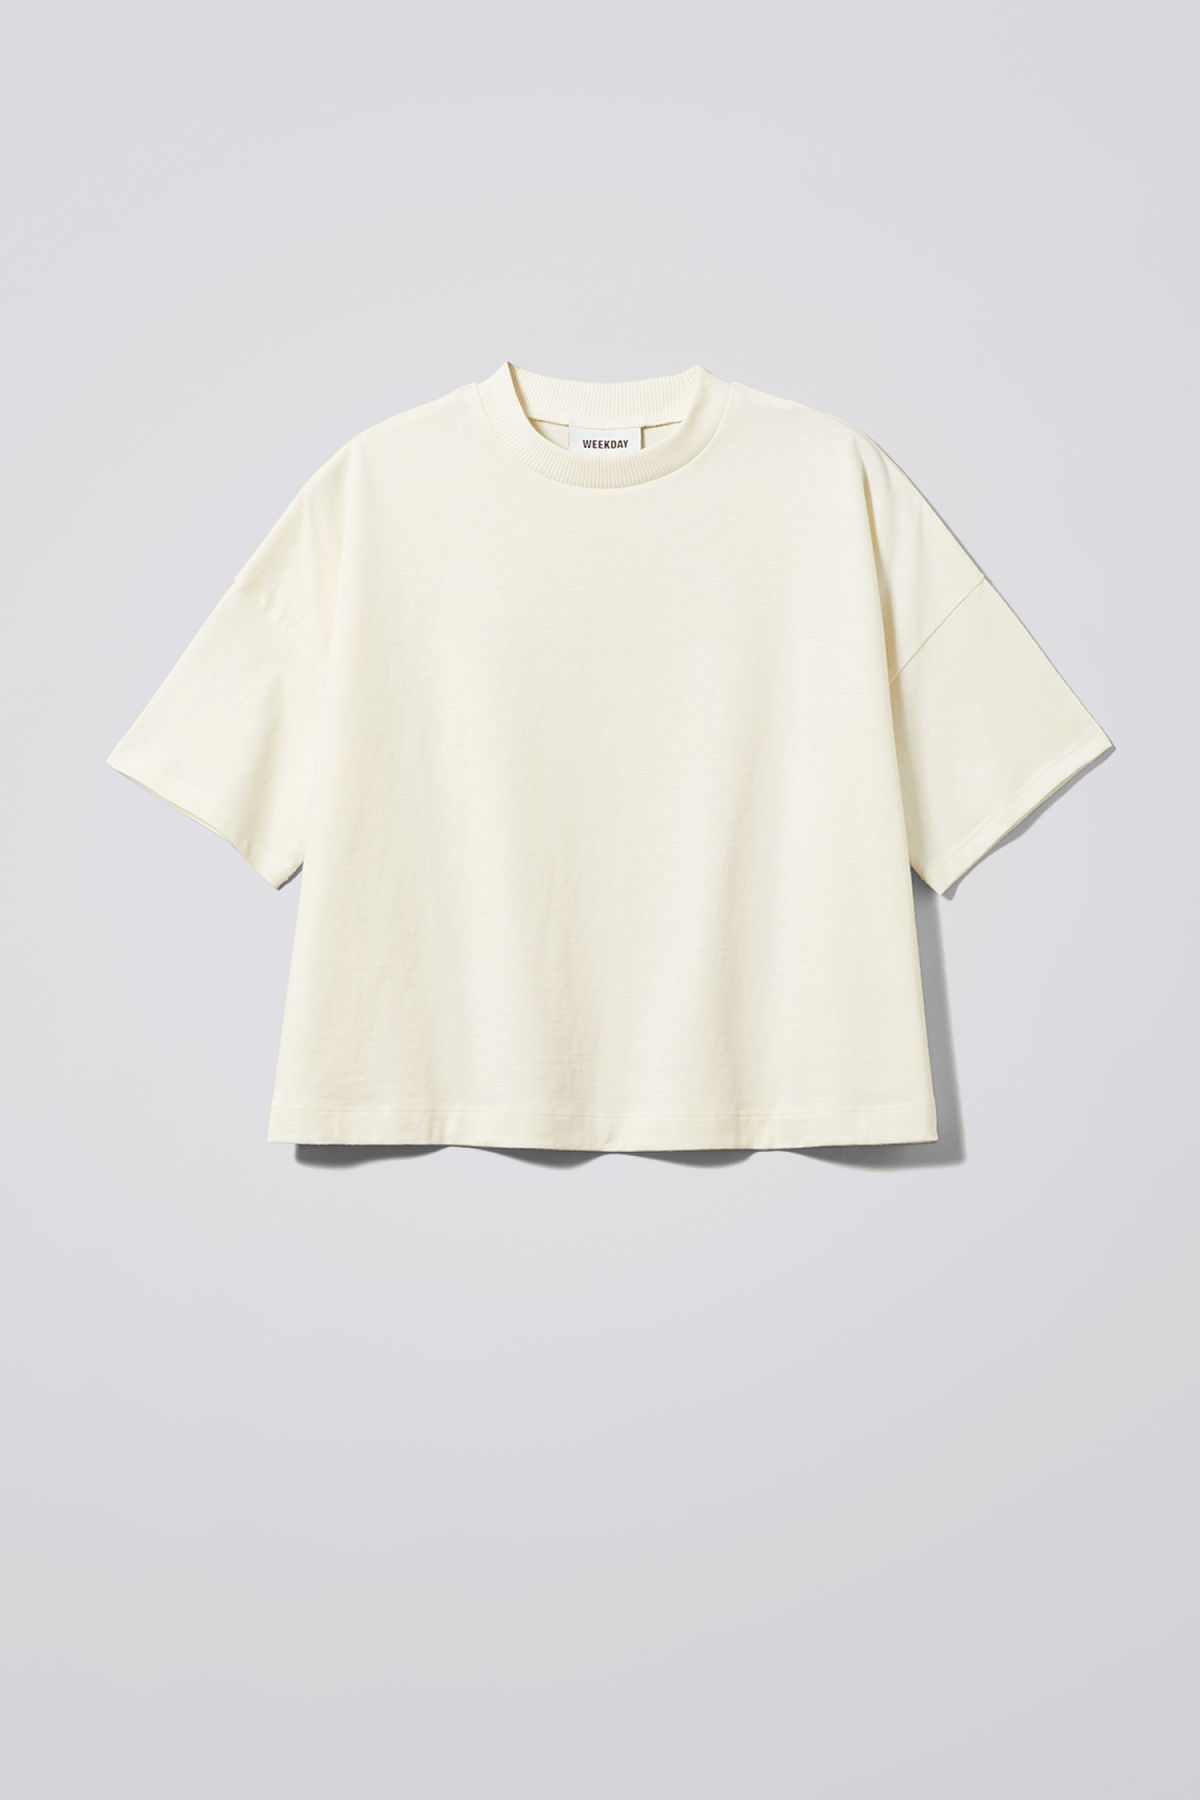 Stillife Front Image of Weekday Carrie Tee in White